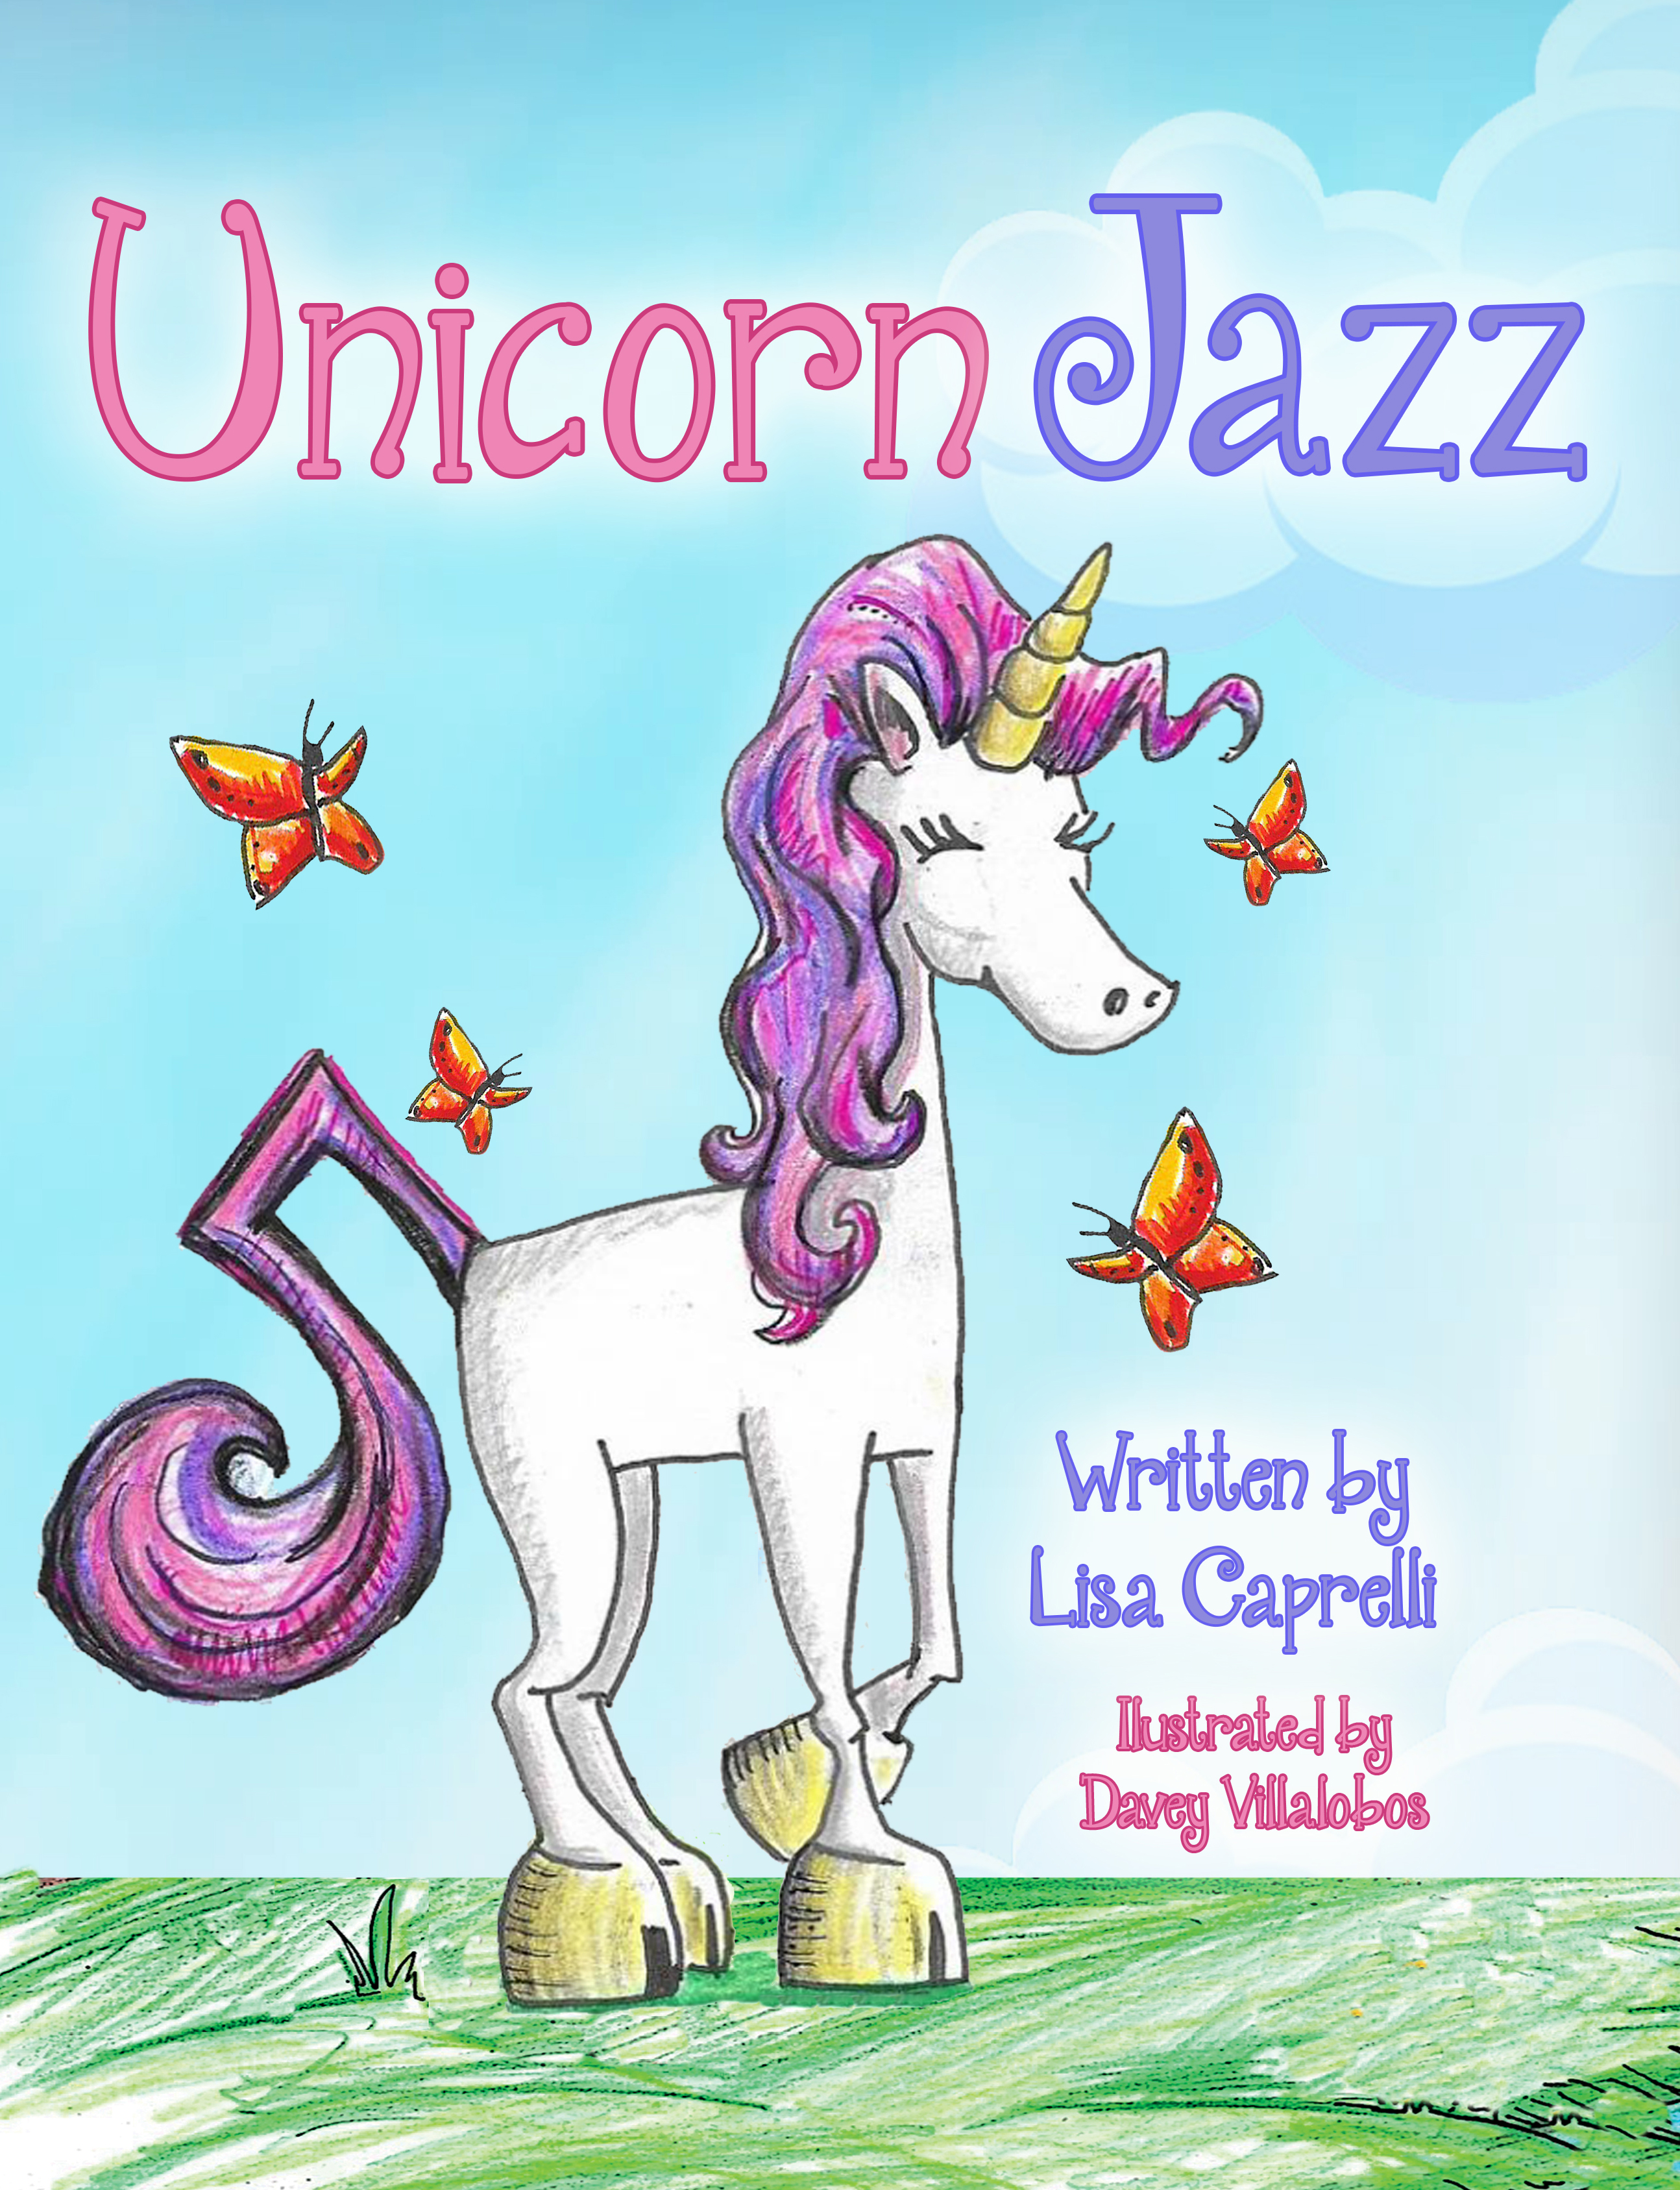 CHILDREN'S UNICORN BOOK WITH PLUSH TOY ANIMAL